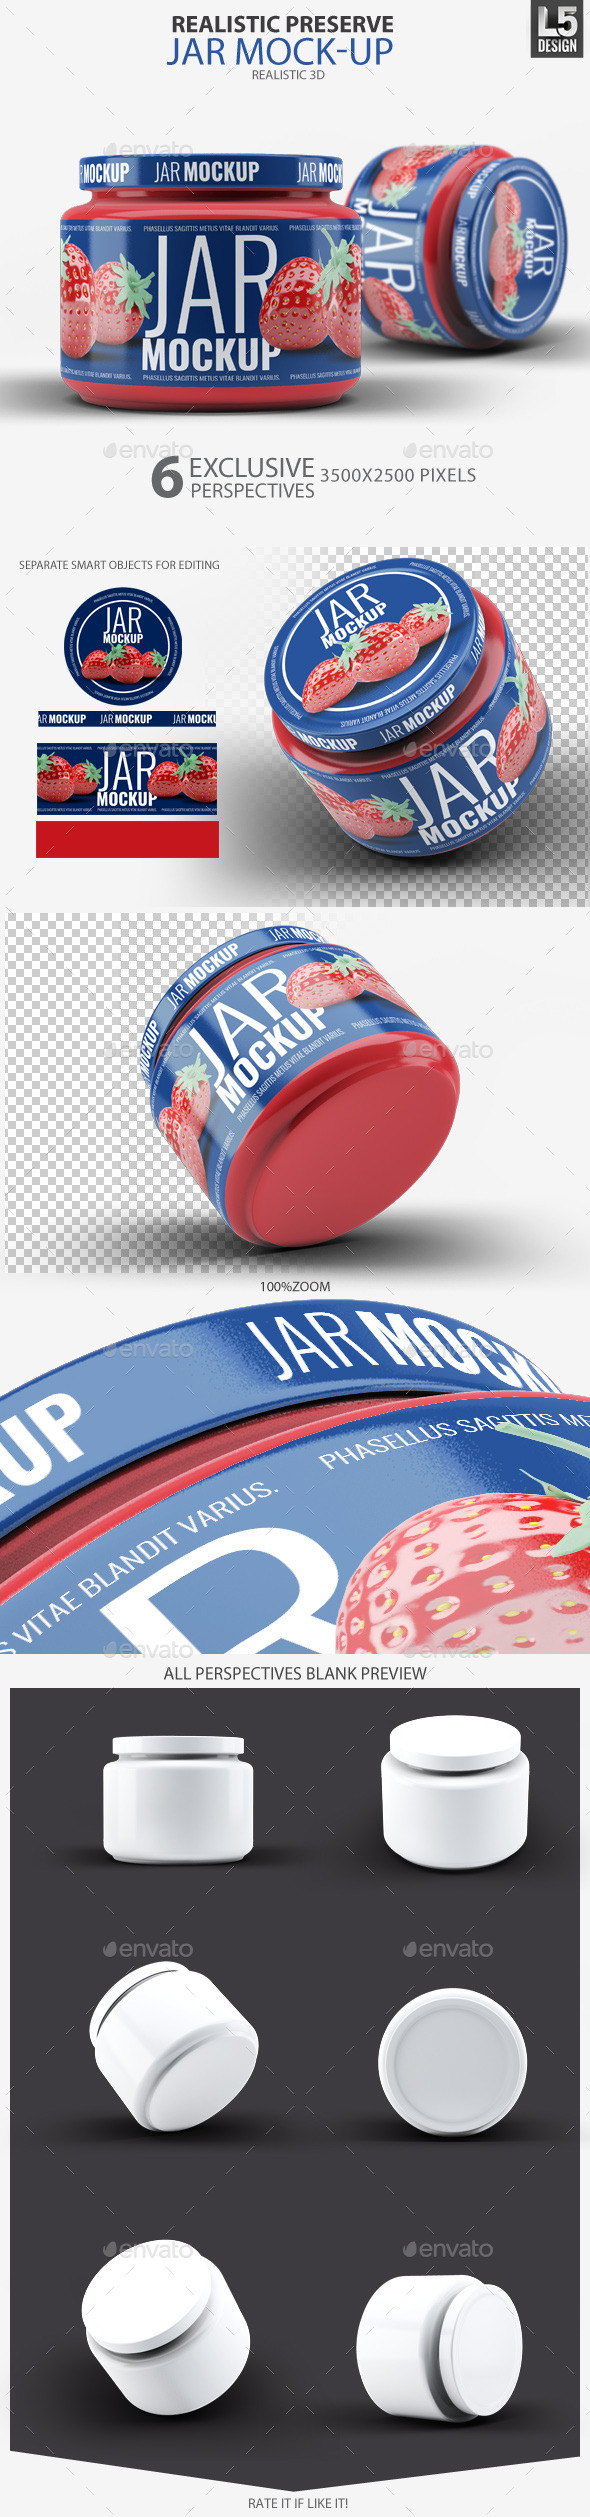 GraphicRiver Realistic Preserve Jar Mock-Up 11315587